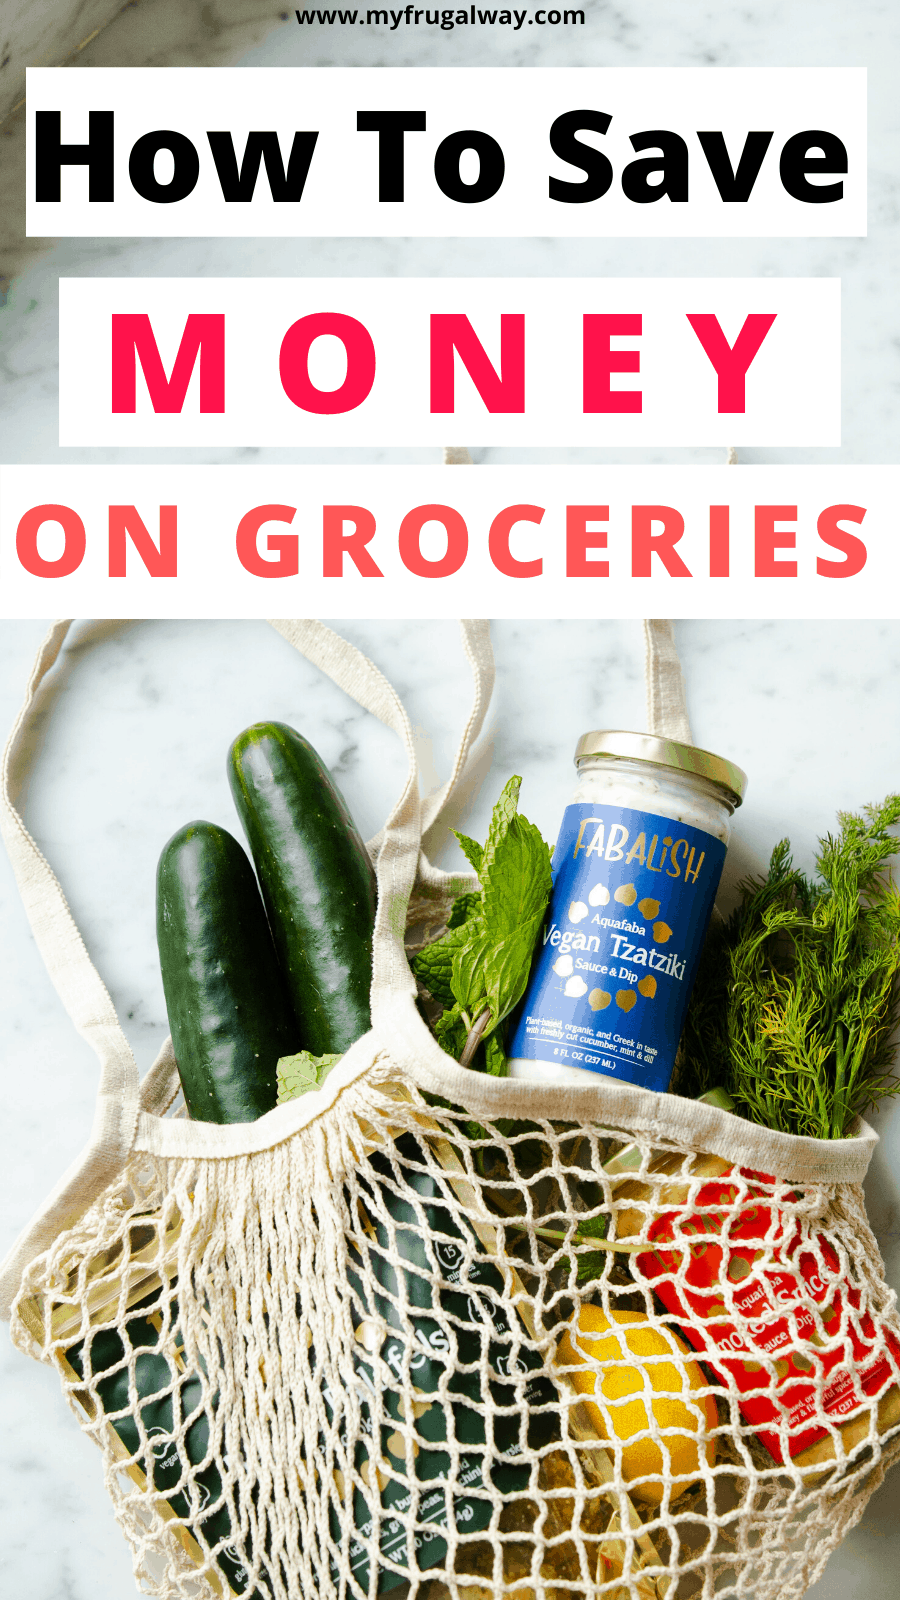 Frugal living tips to save money on groceries. Best tips for grocery shopping on a budget. #mealplanning #finance #savemoney